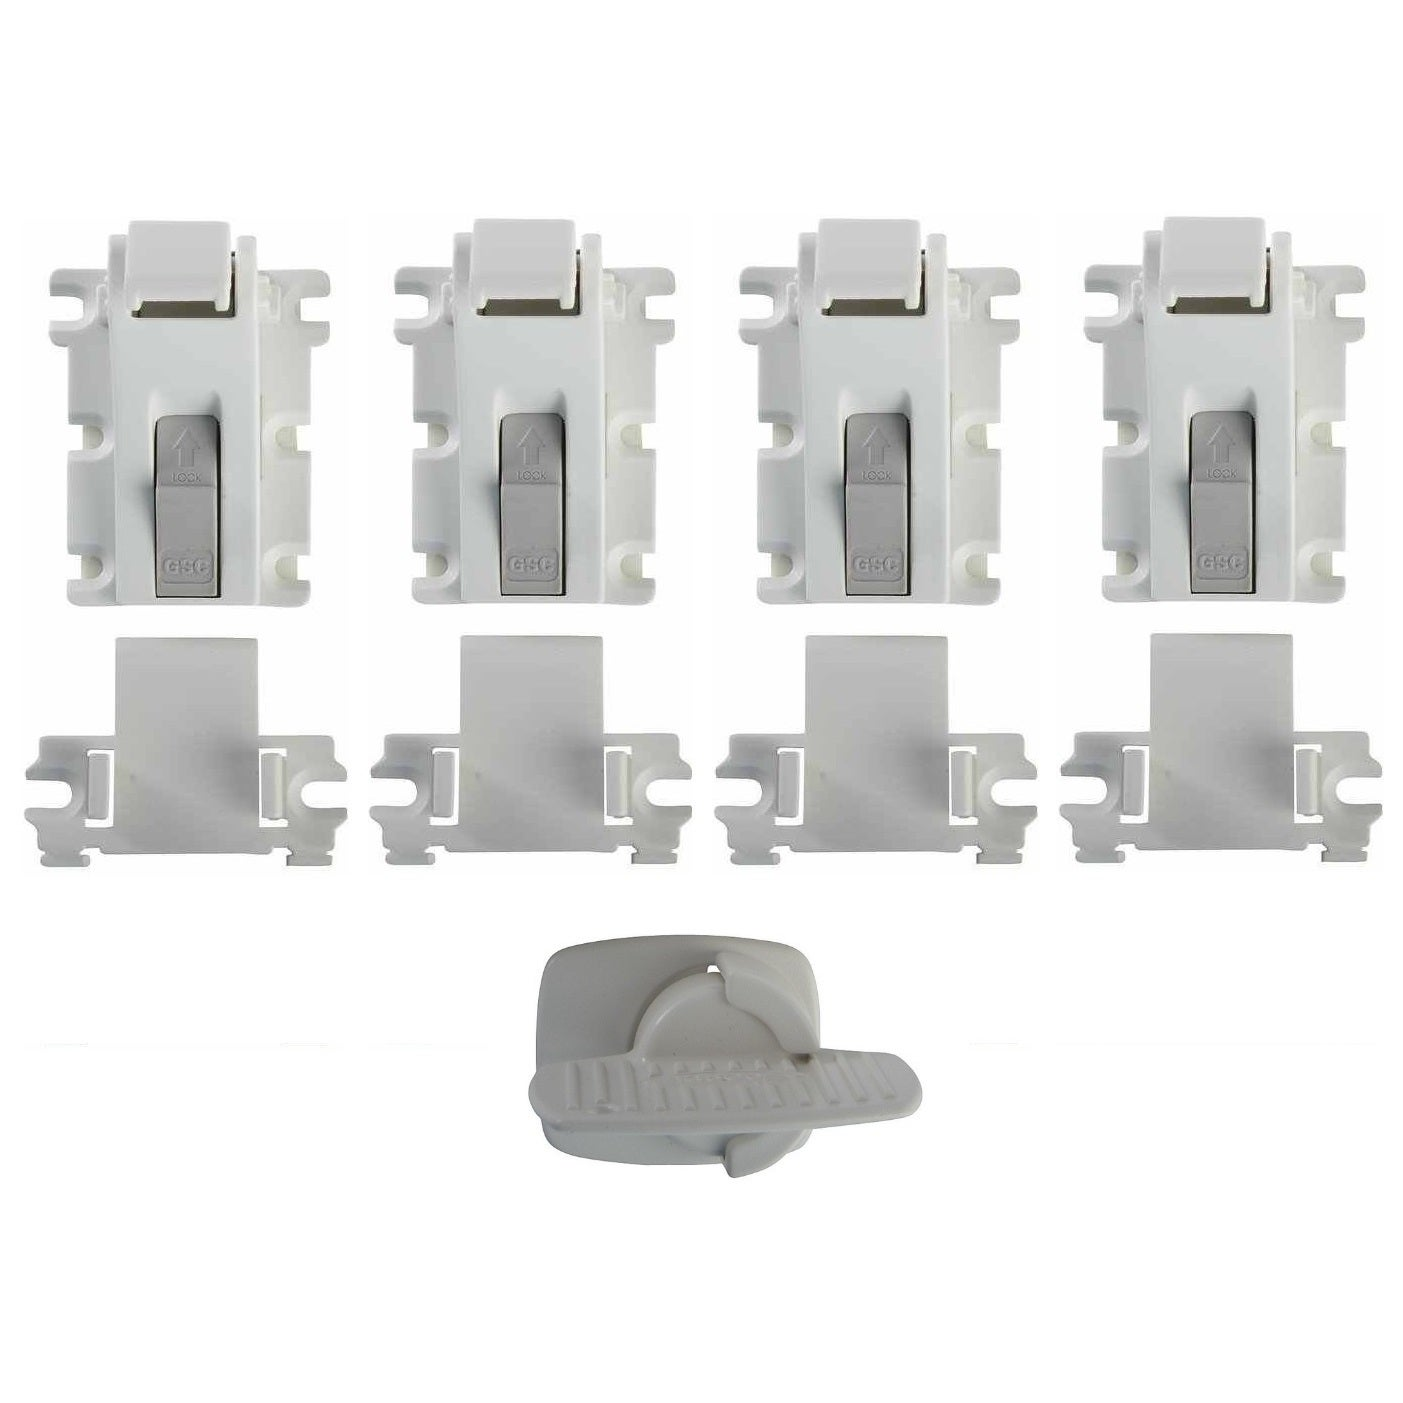 KidCo Magnetic Lock Plus Key and Holder (Pack of 4) (Magn...